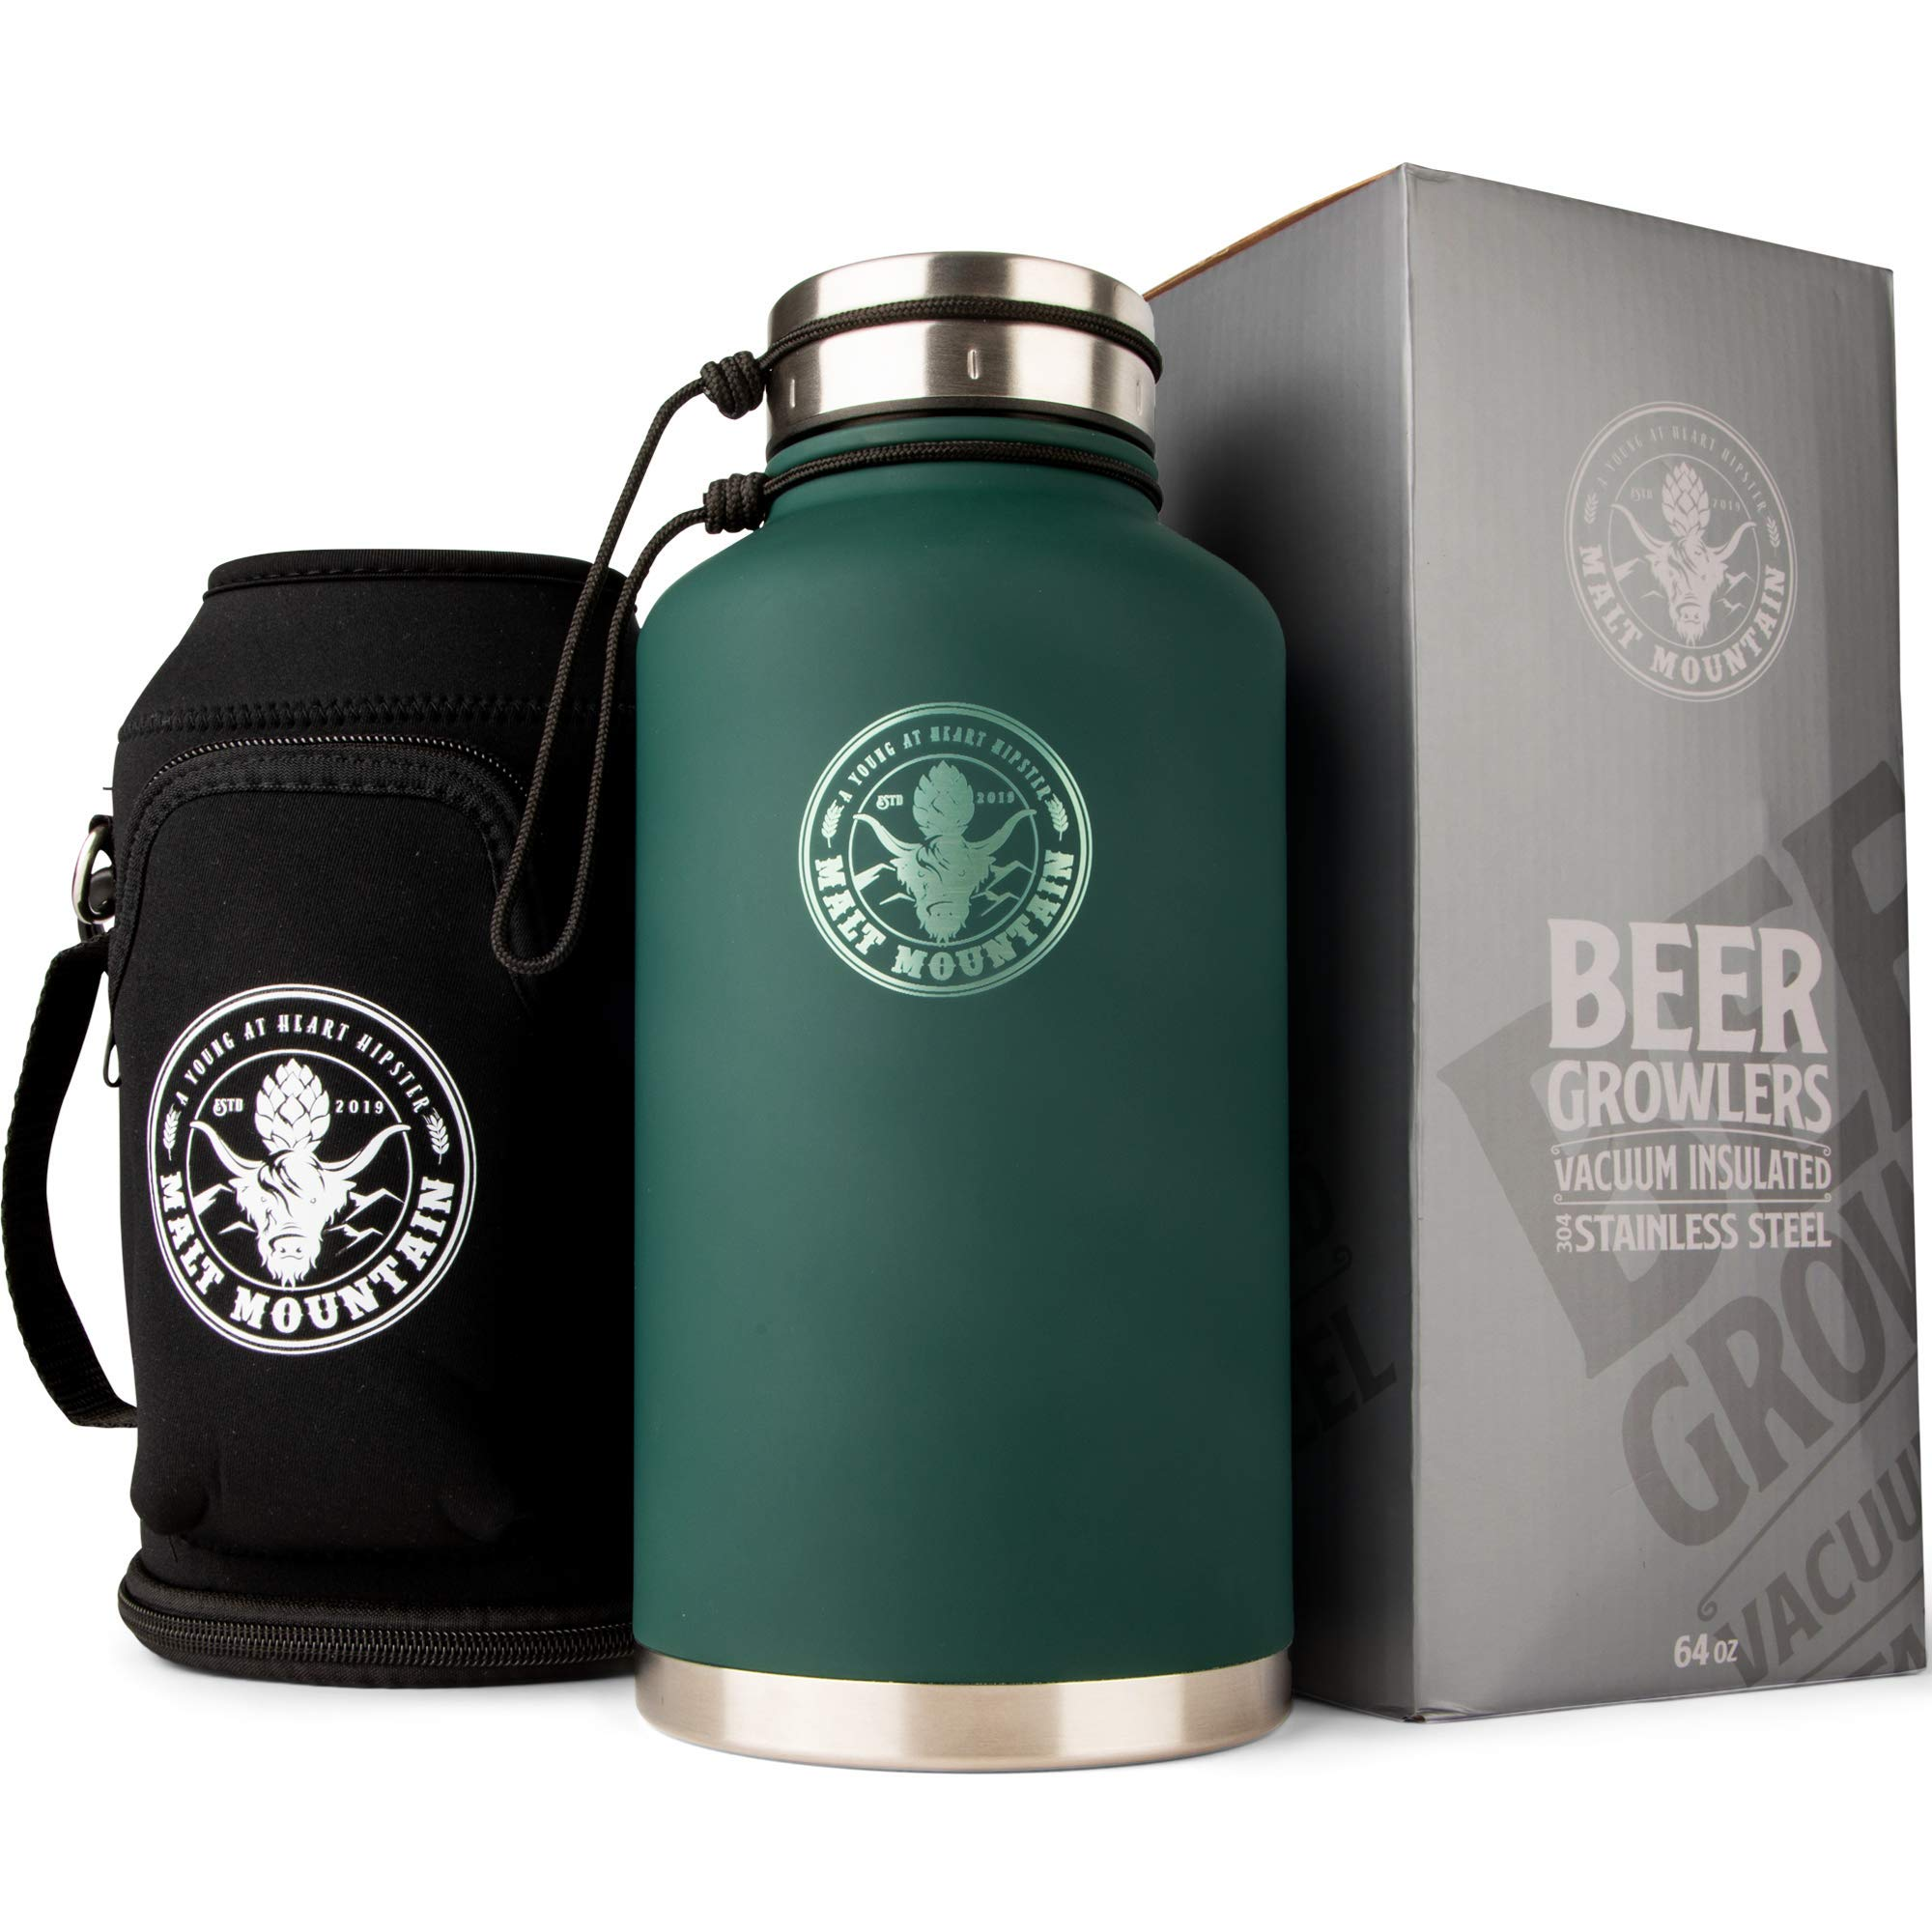 Malt Mountain Insulated Beer Growler, 64 oz, Double-Wall Stainless Steel, with Travel Bag - Vacuum Sealed Growlers for Cold Beer - 48 Hour Temperature and Carbonation - Drink Canister Jugs for Camping